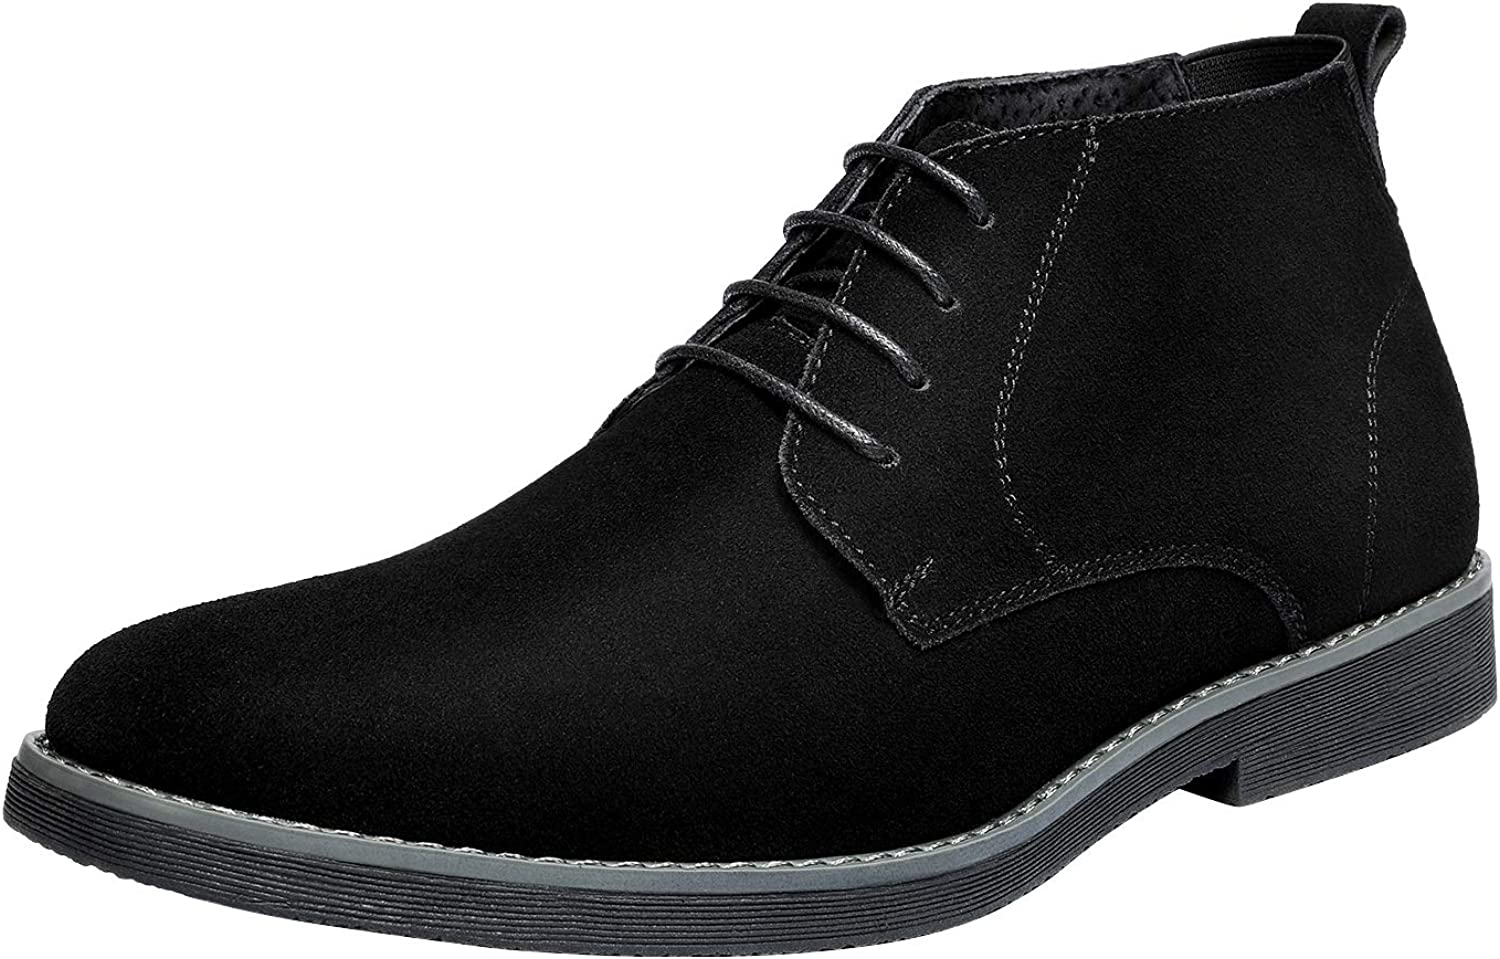 Bruno Marc Men's Classic Original Suede Leather Desert Storm Chukka Boots